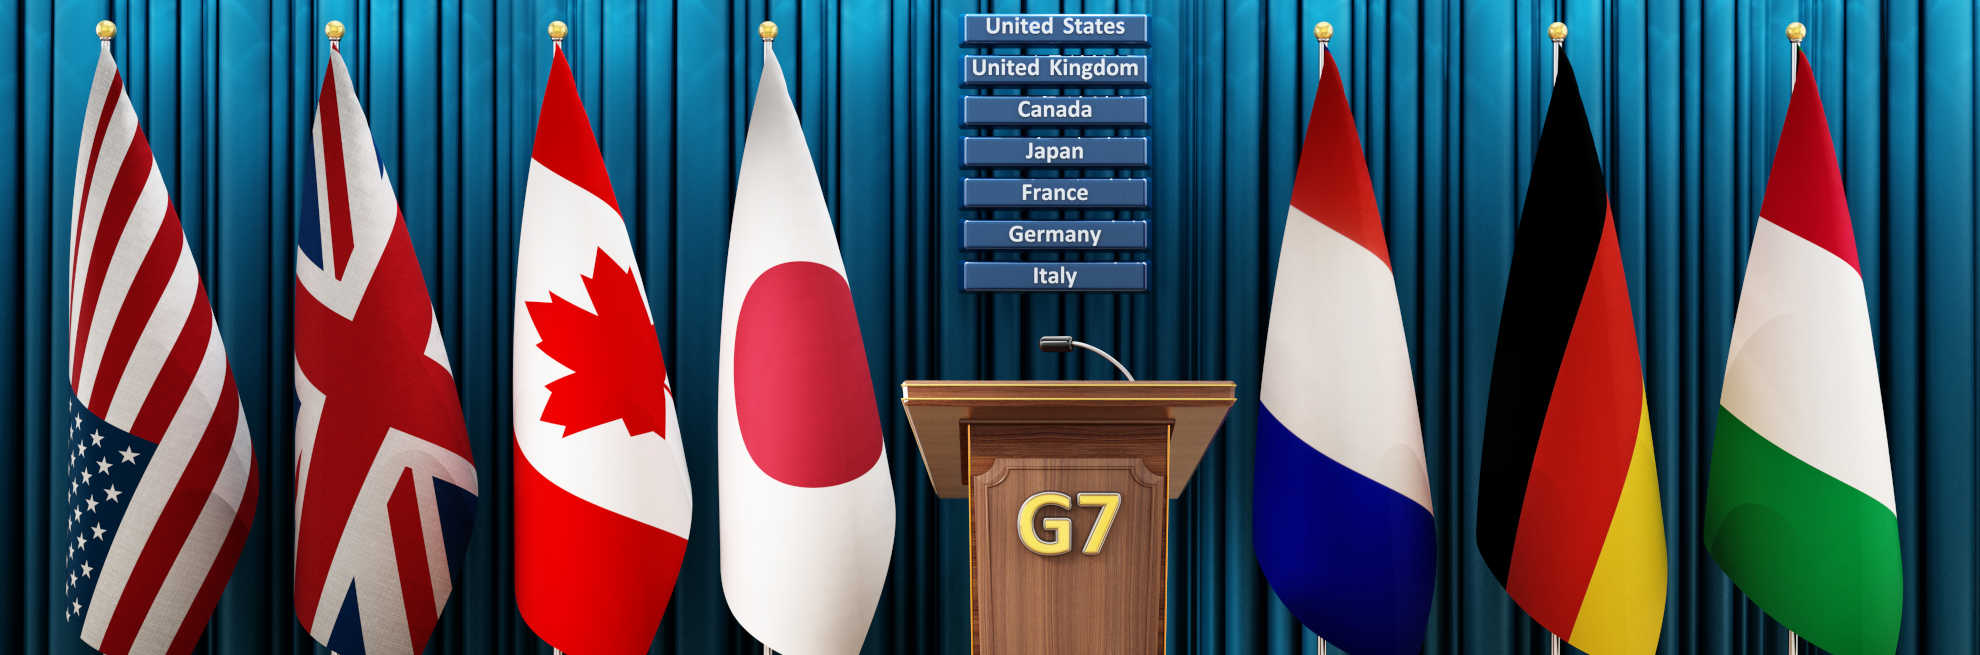 G7 Leaders Pledge Climate Action But Fall Short On Detail